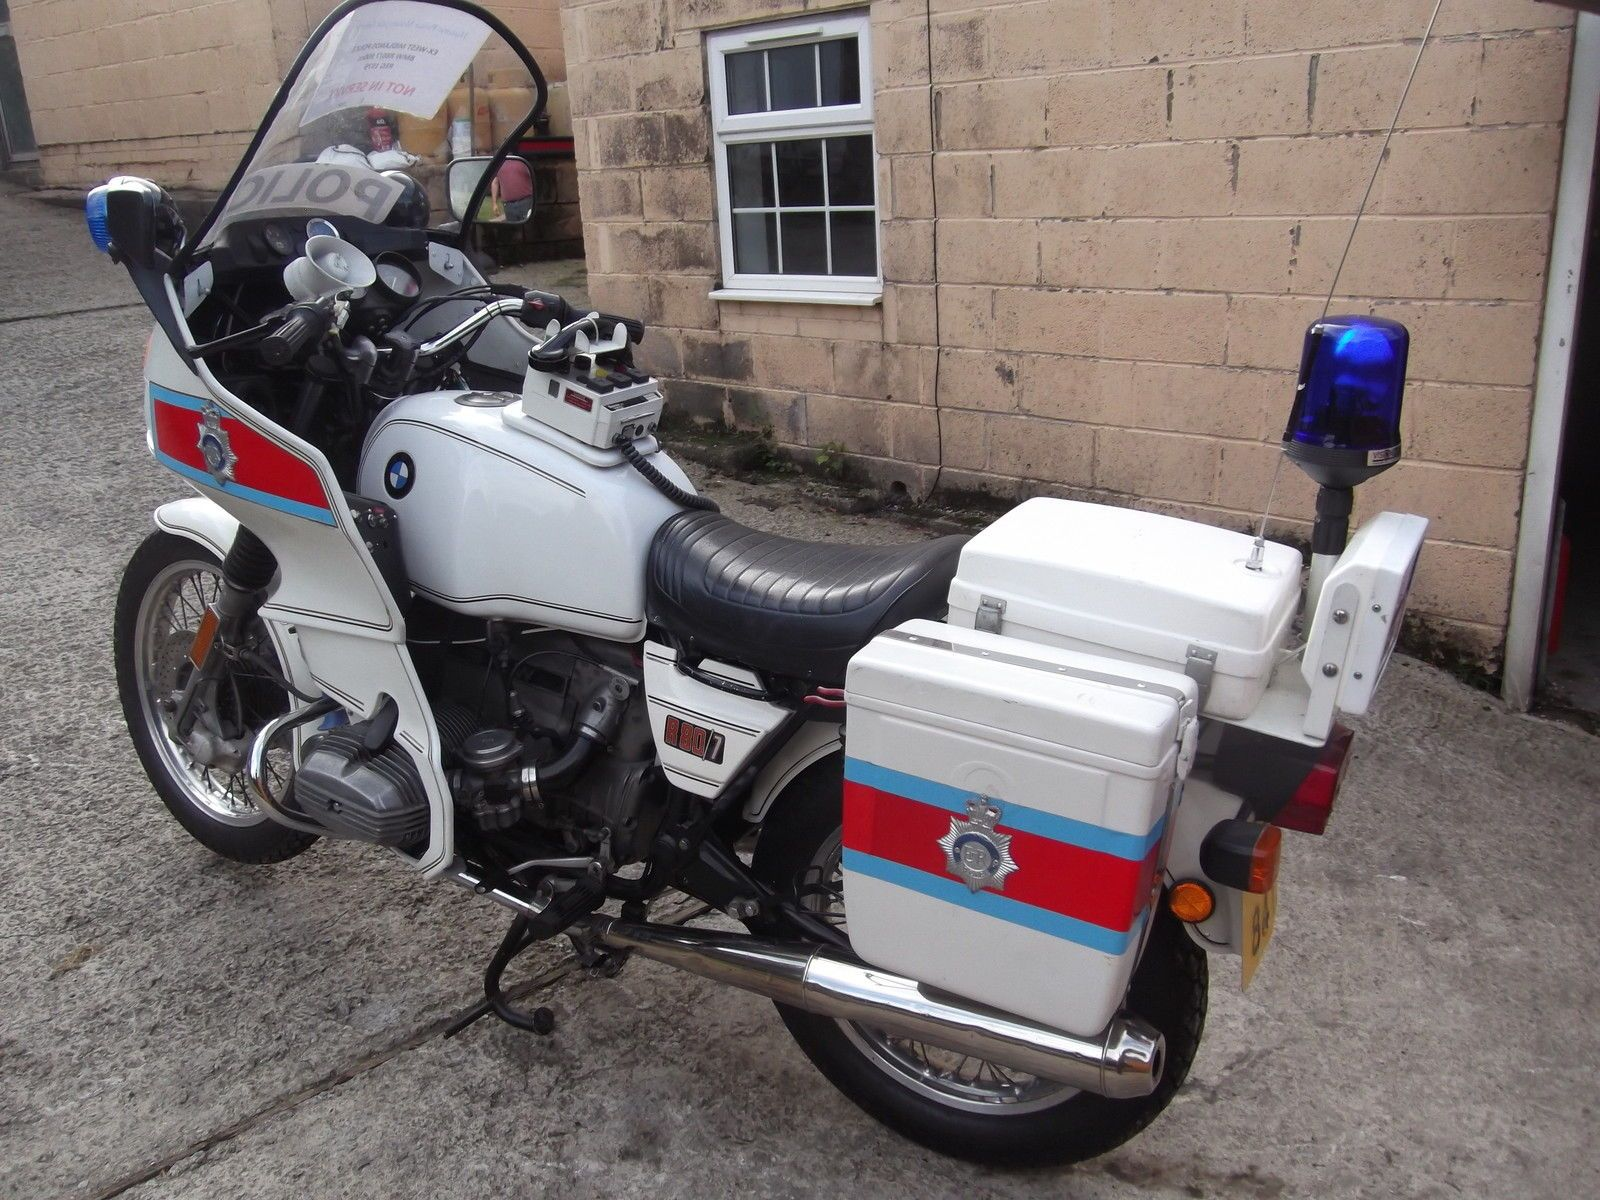 1979 BMW R80 Ex-Police Motorcycle. 800cc. Restored, Good ...